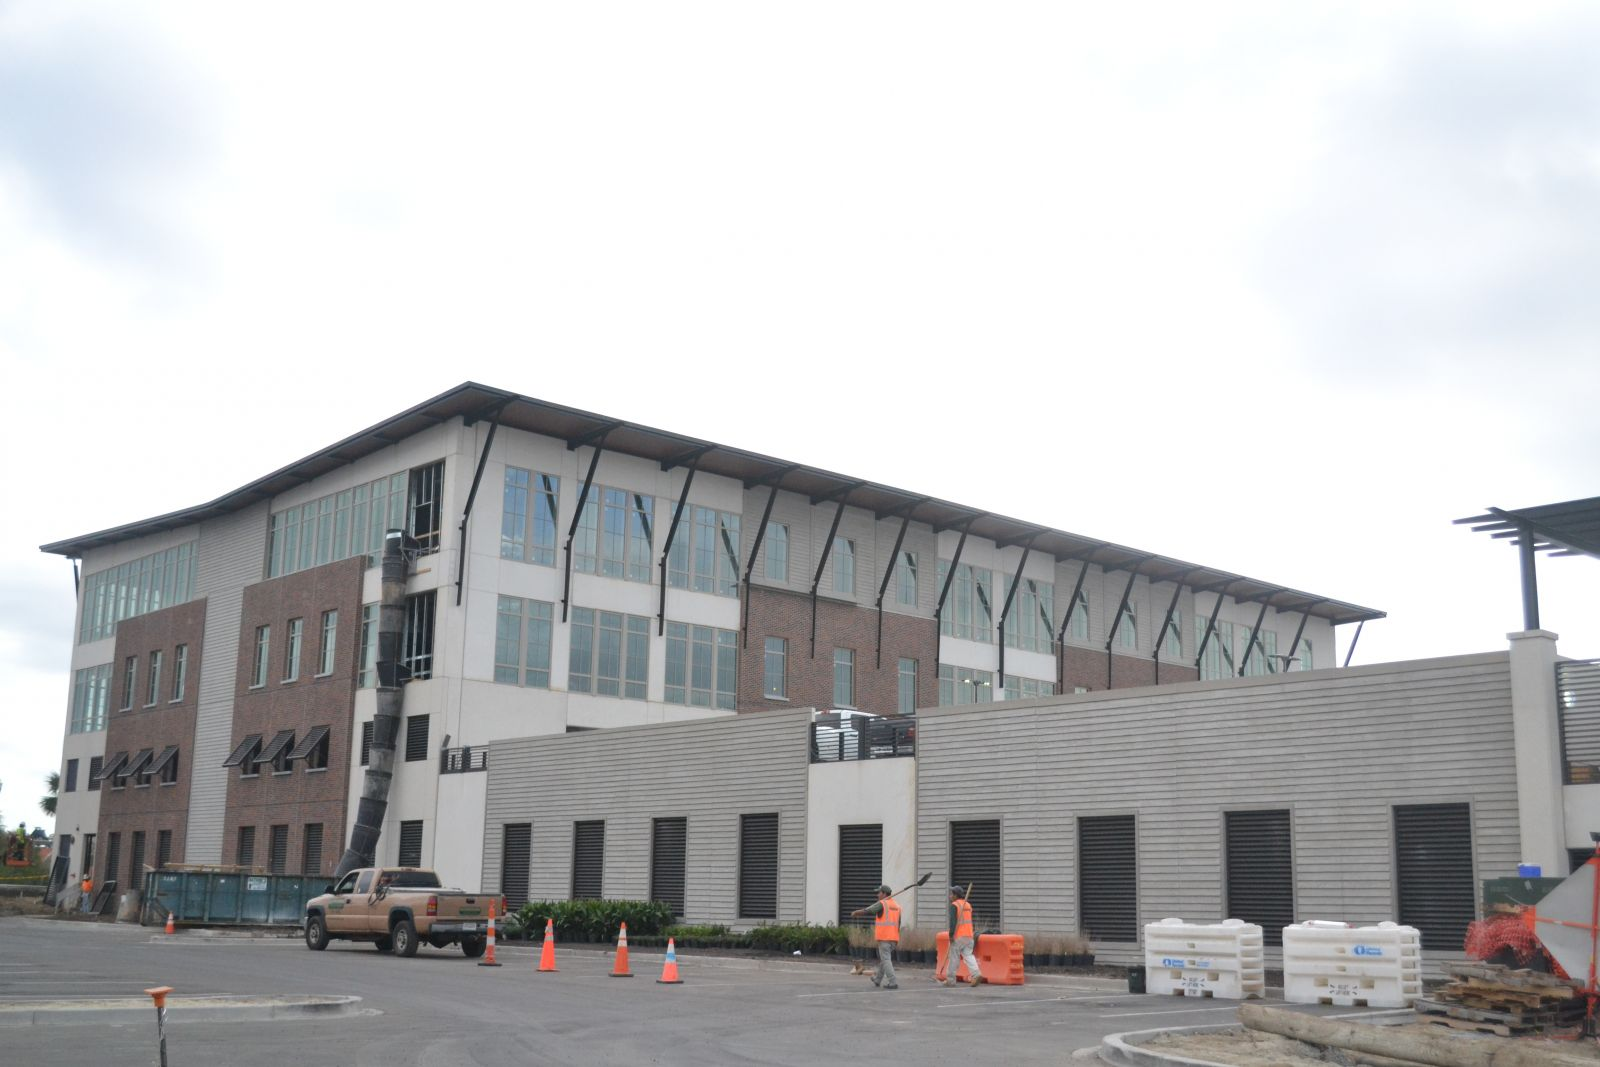 A new office building at 101 Coleman Blvd. in Mount Pleasant is nearing completion. The development, which overlooks Shem Creek, will have 41,700 square feet of Class A office space and a parking garage. (Photo/Liz Segrist)